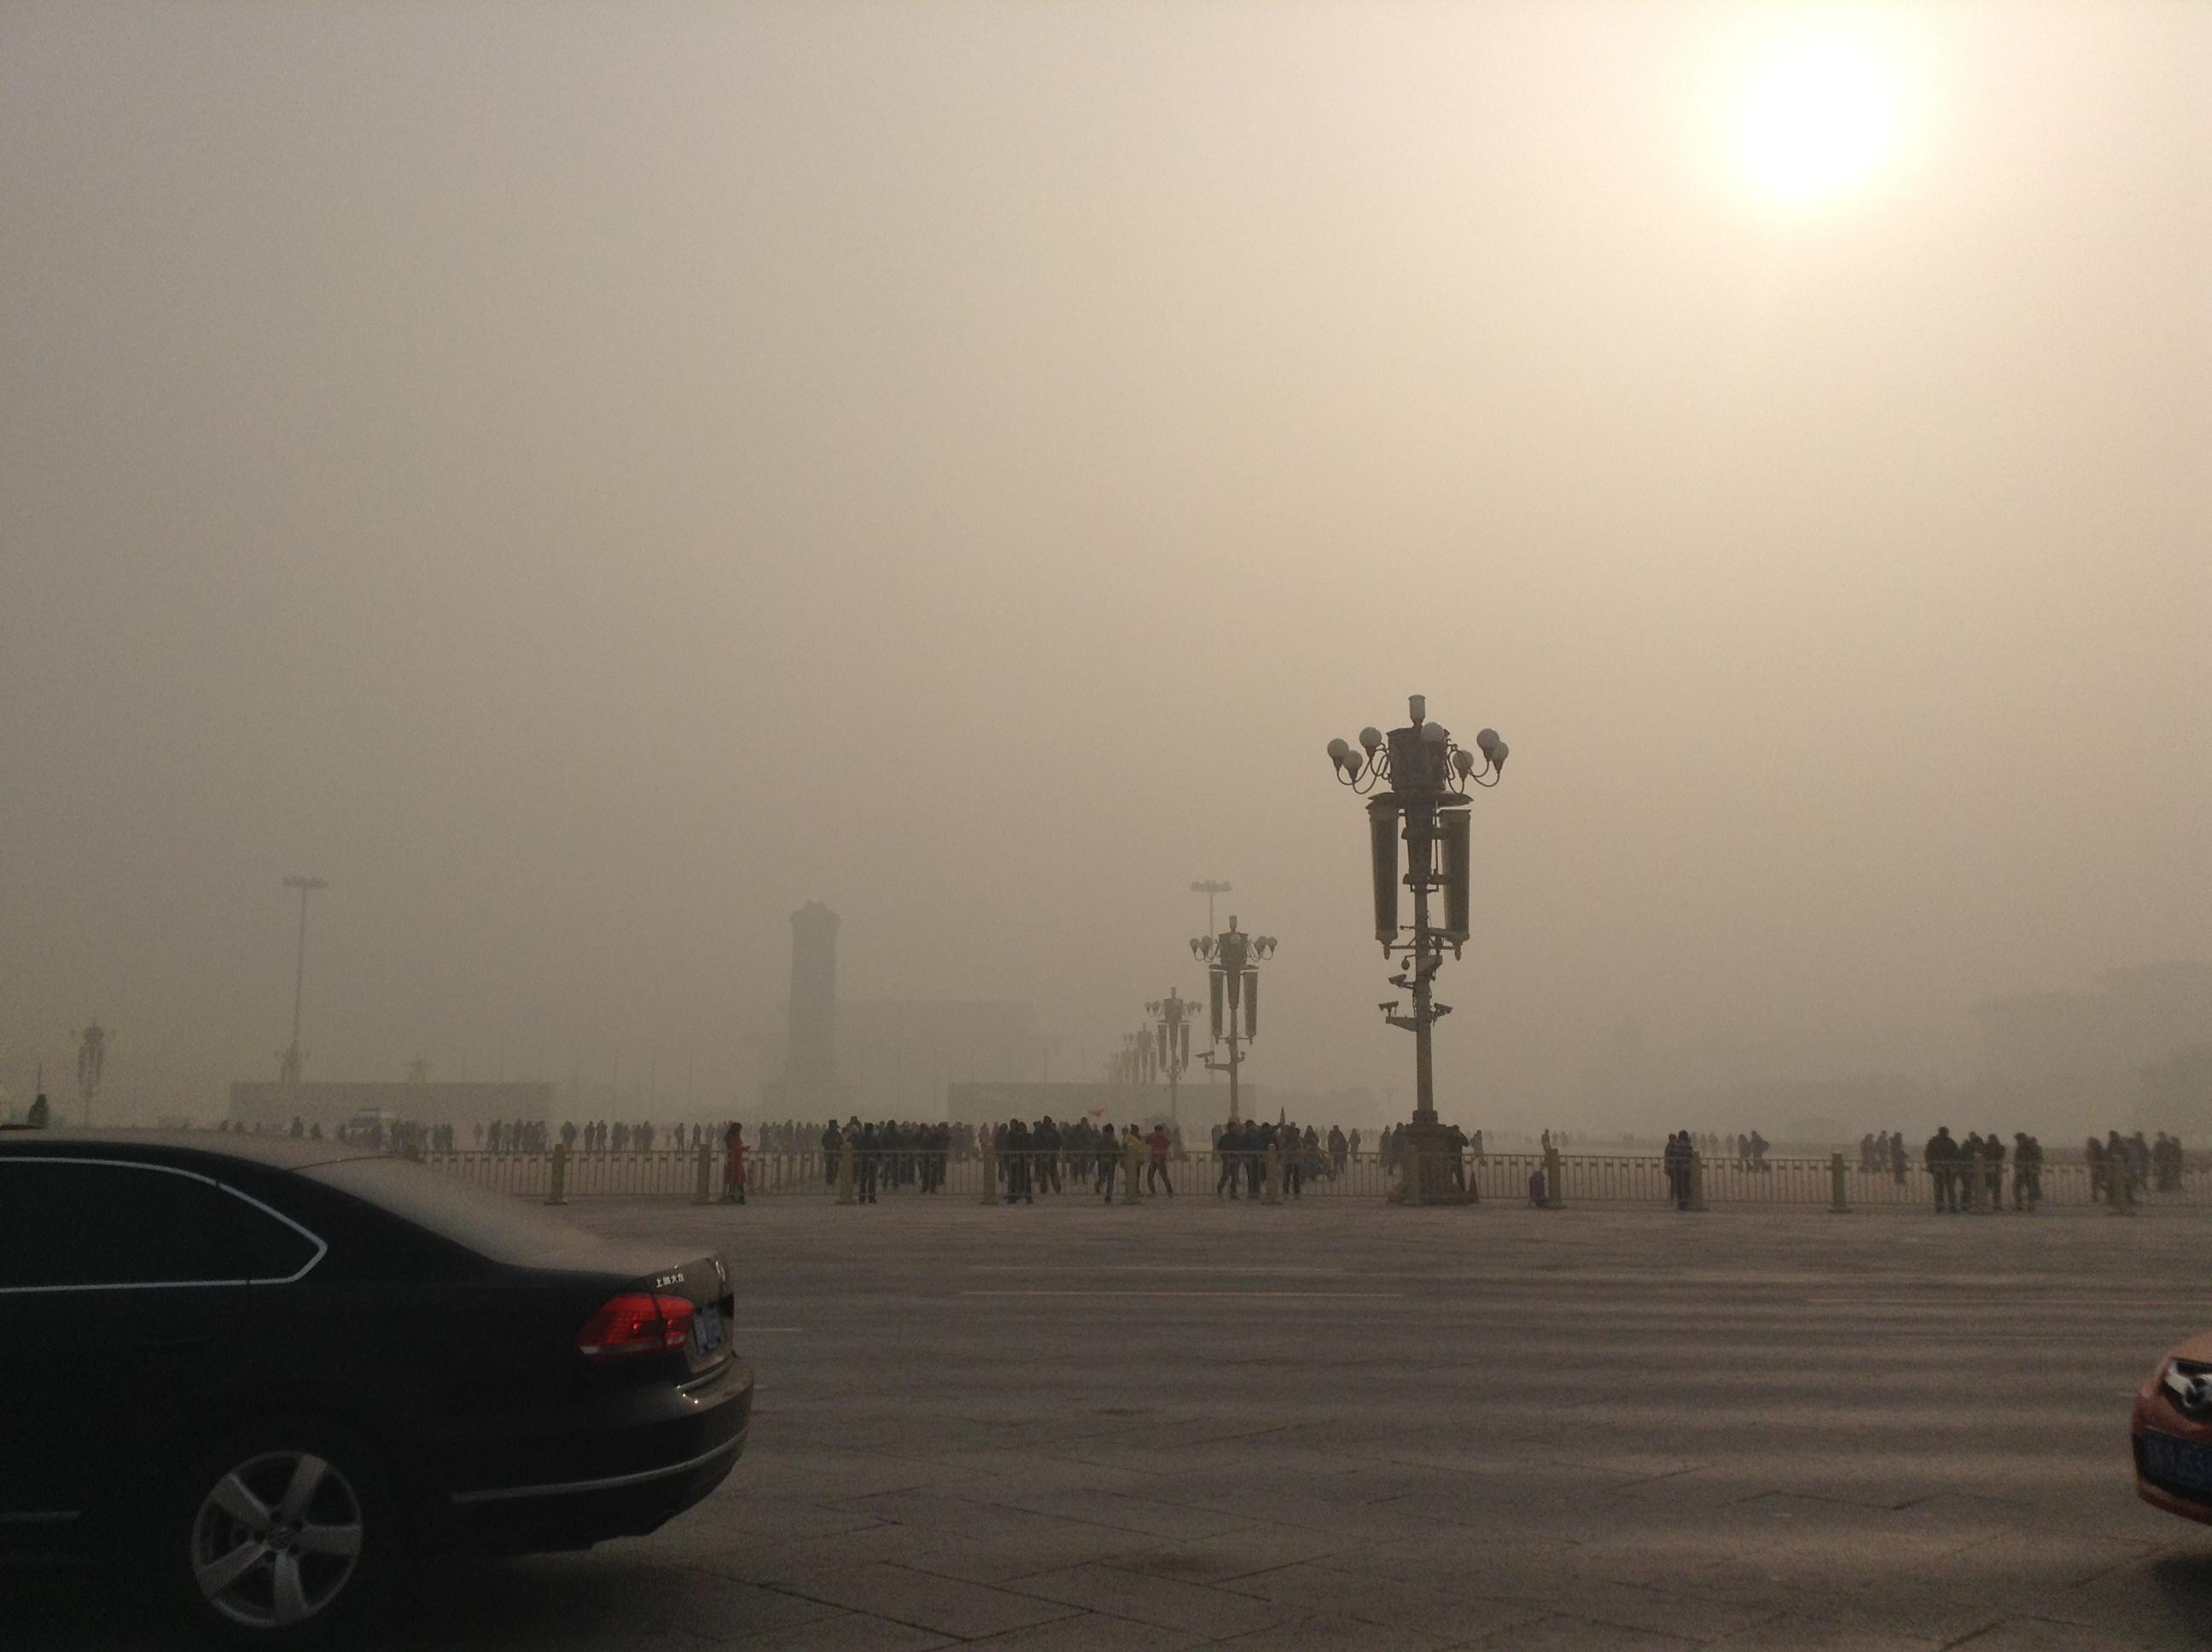 Air Pollution In Tiananmen Square, China